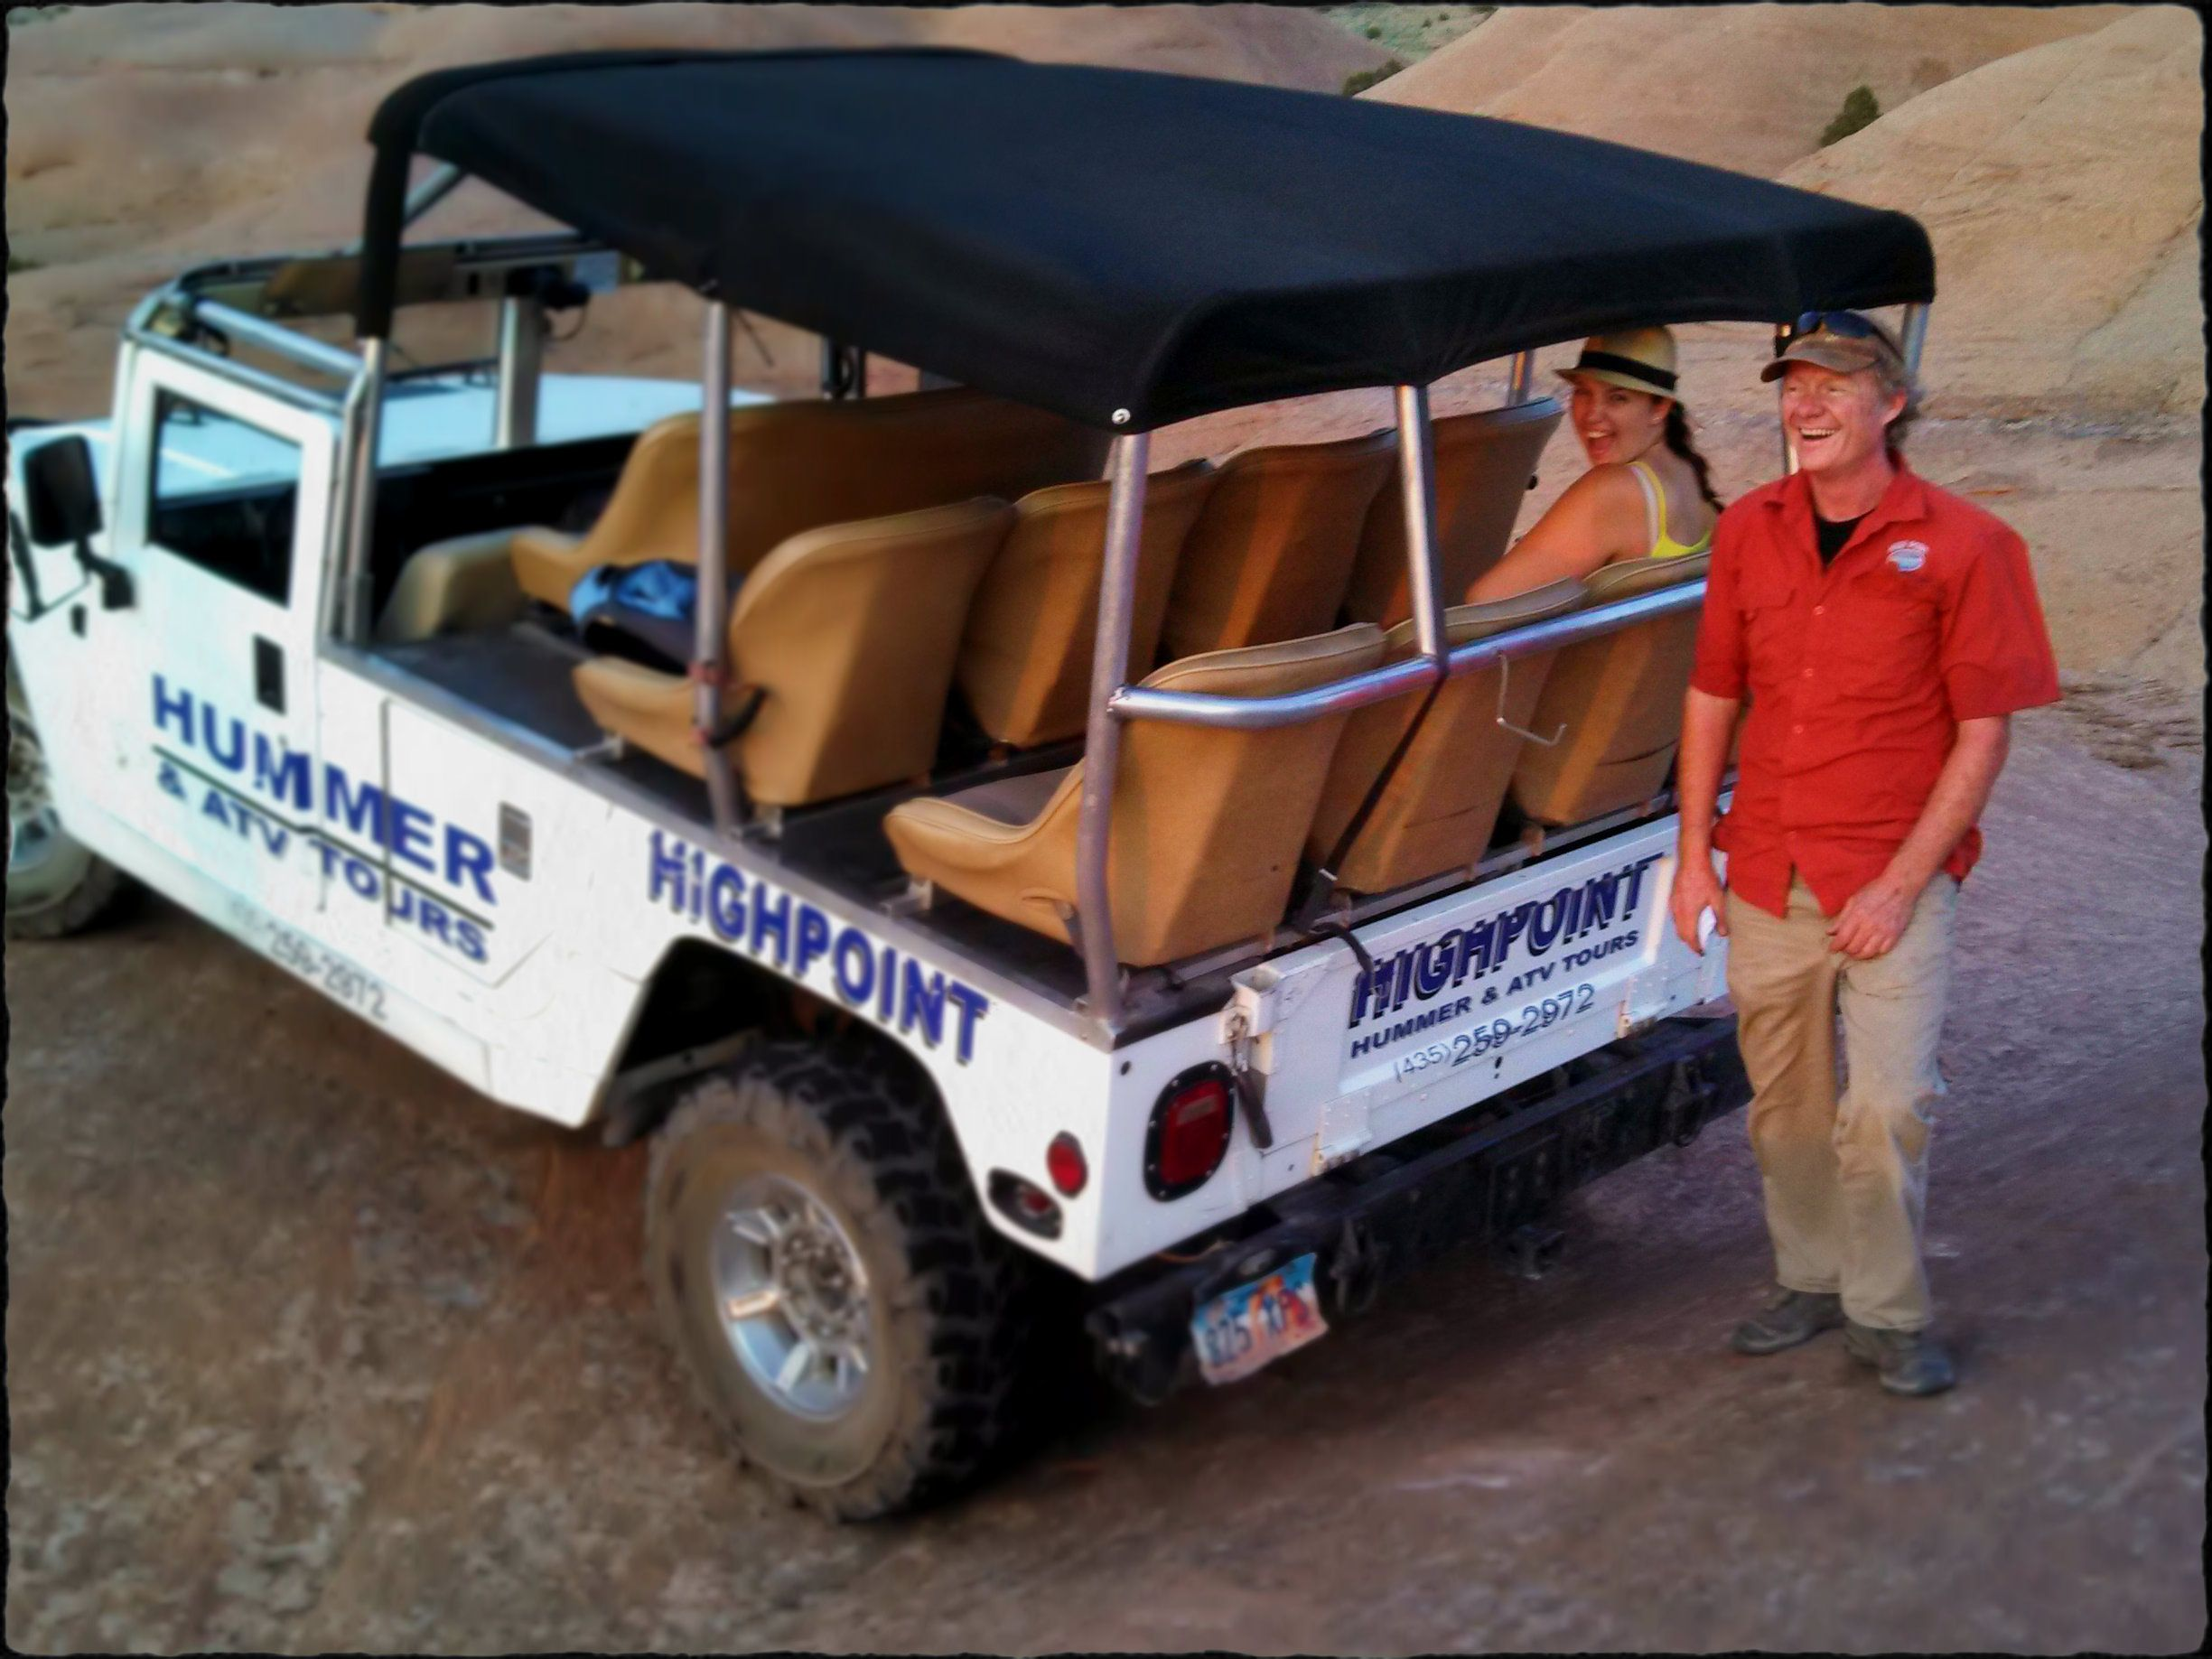 Another enjoyable hummer tour with one of our favorite